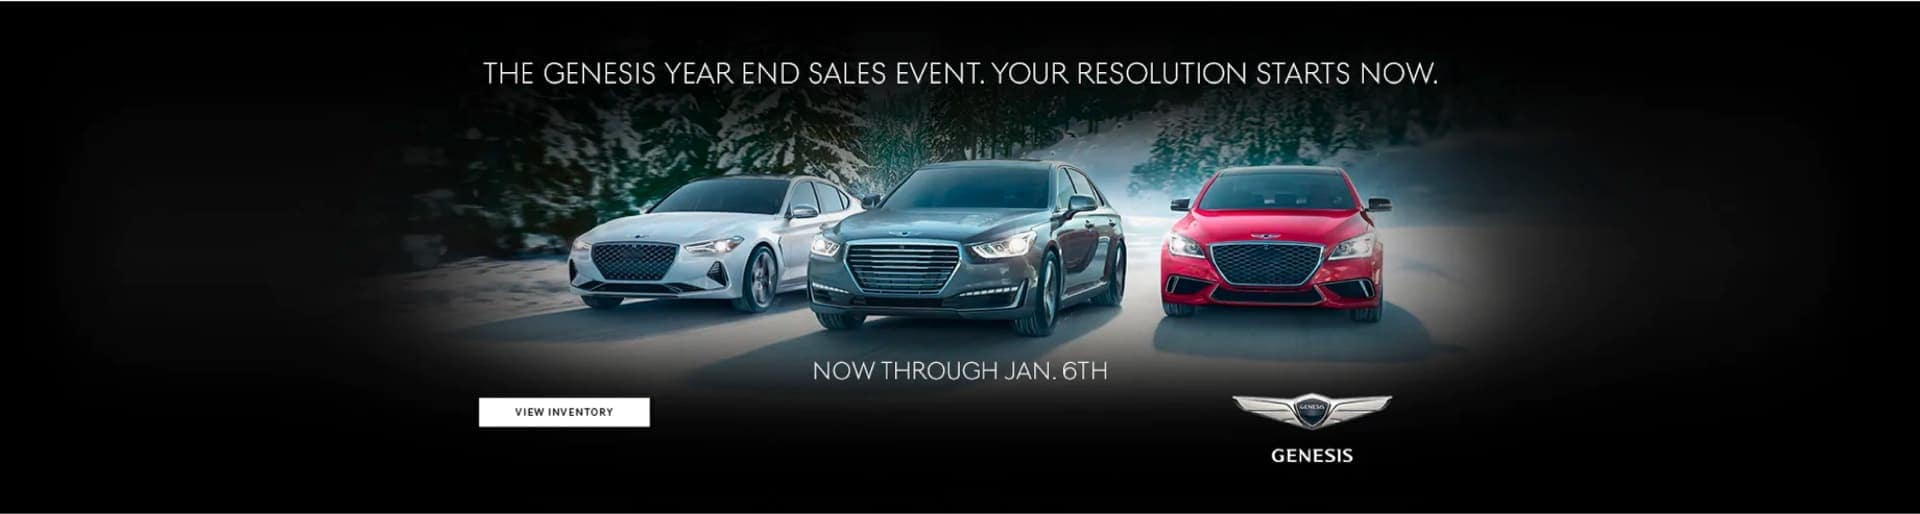 The Genesis Year End Sales Event. Your Resolution Starts Now. Now Through Jan 6th